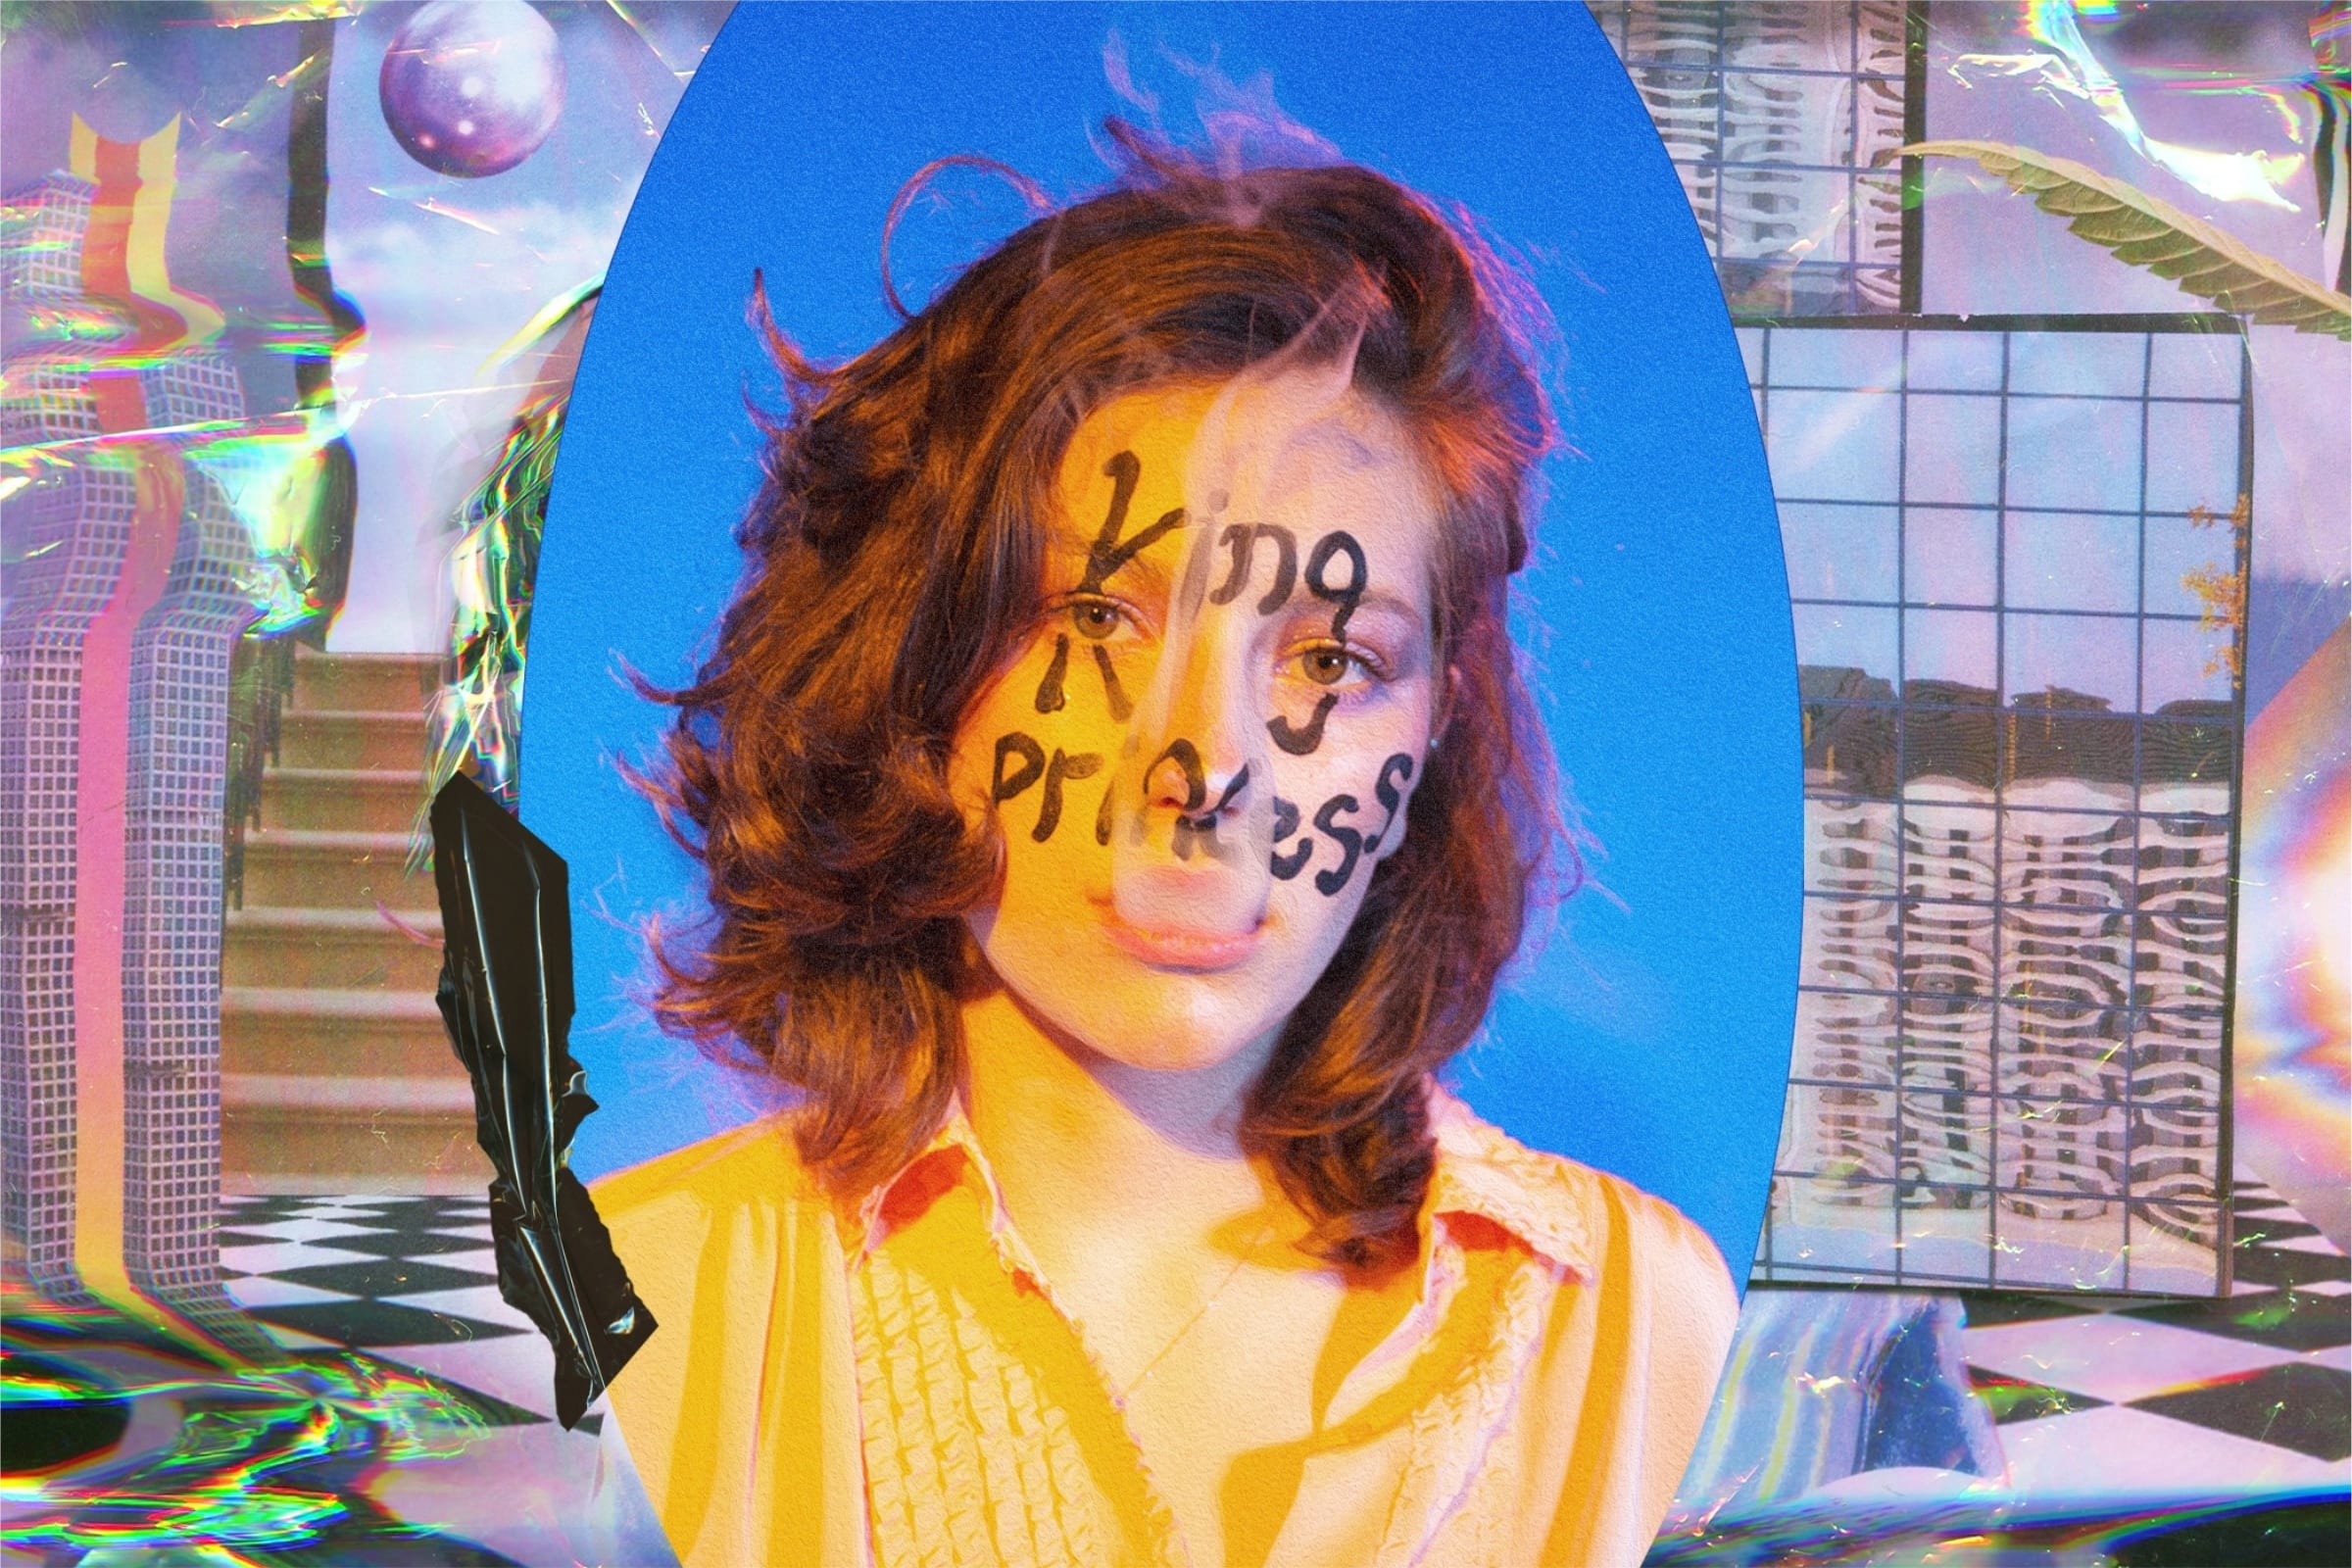 King Princess Antidote Magazine